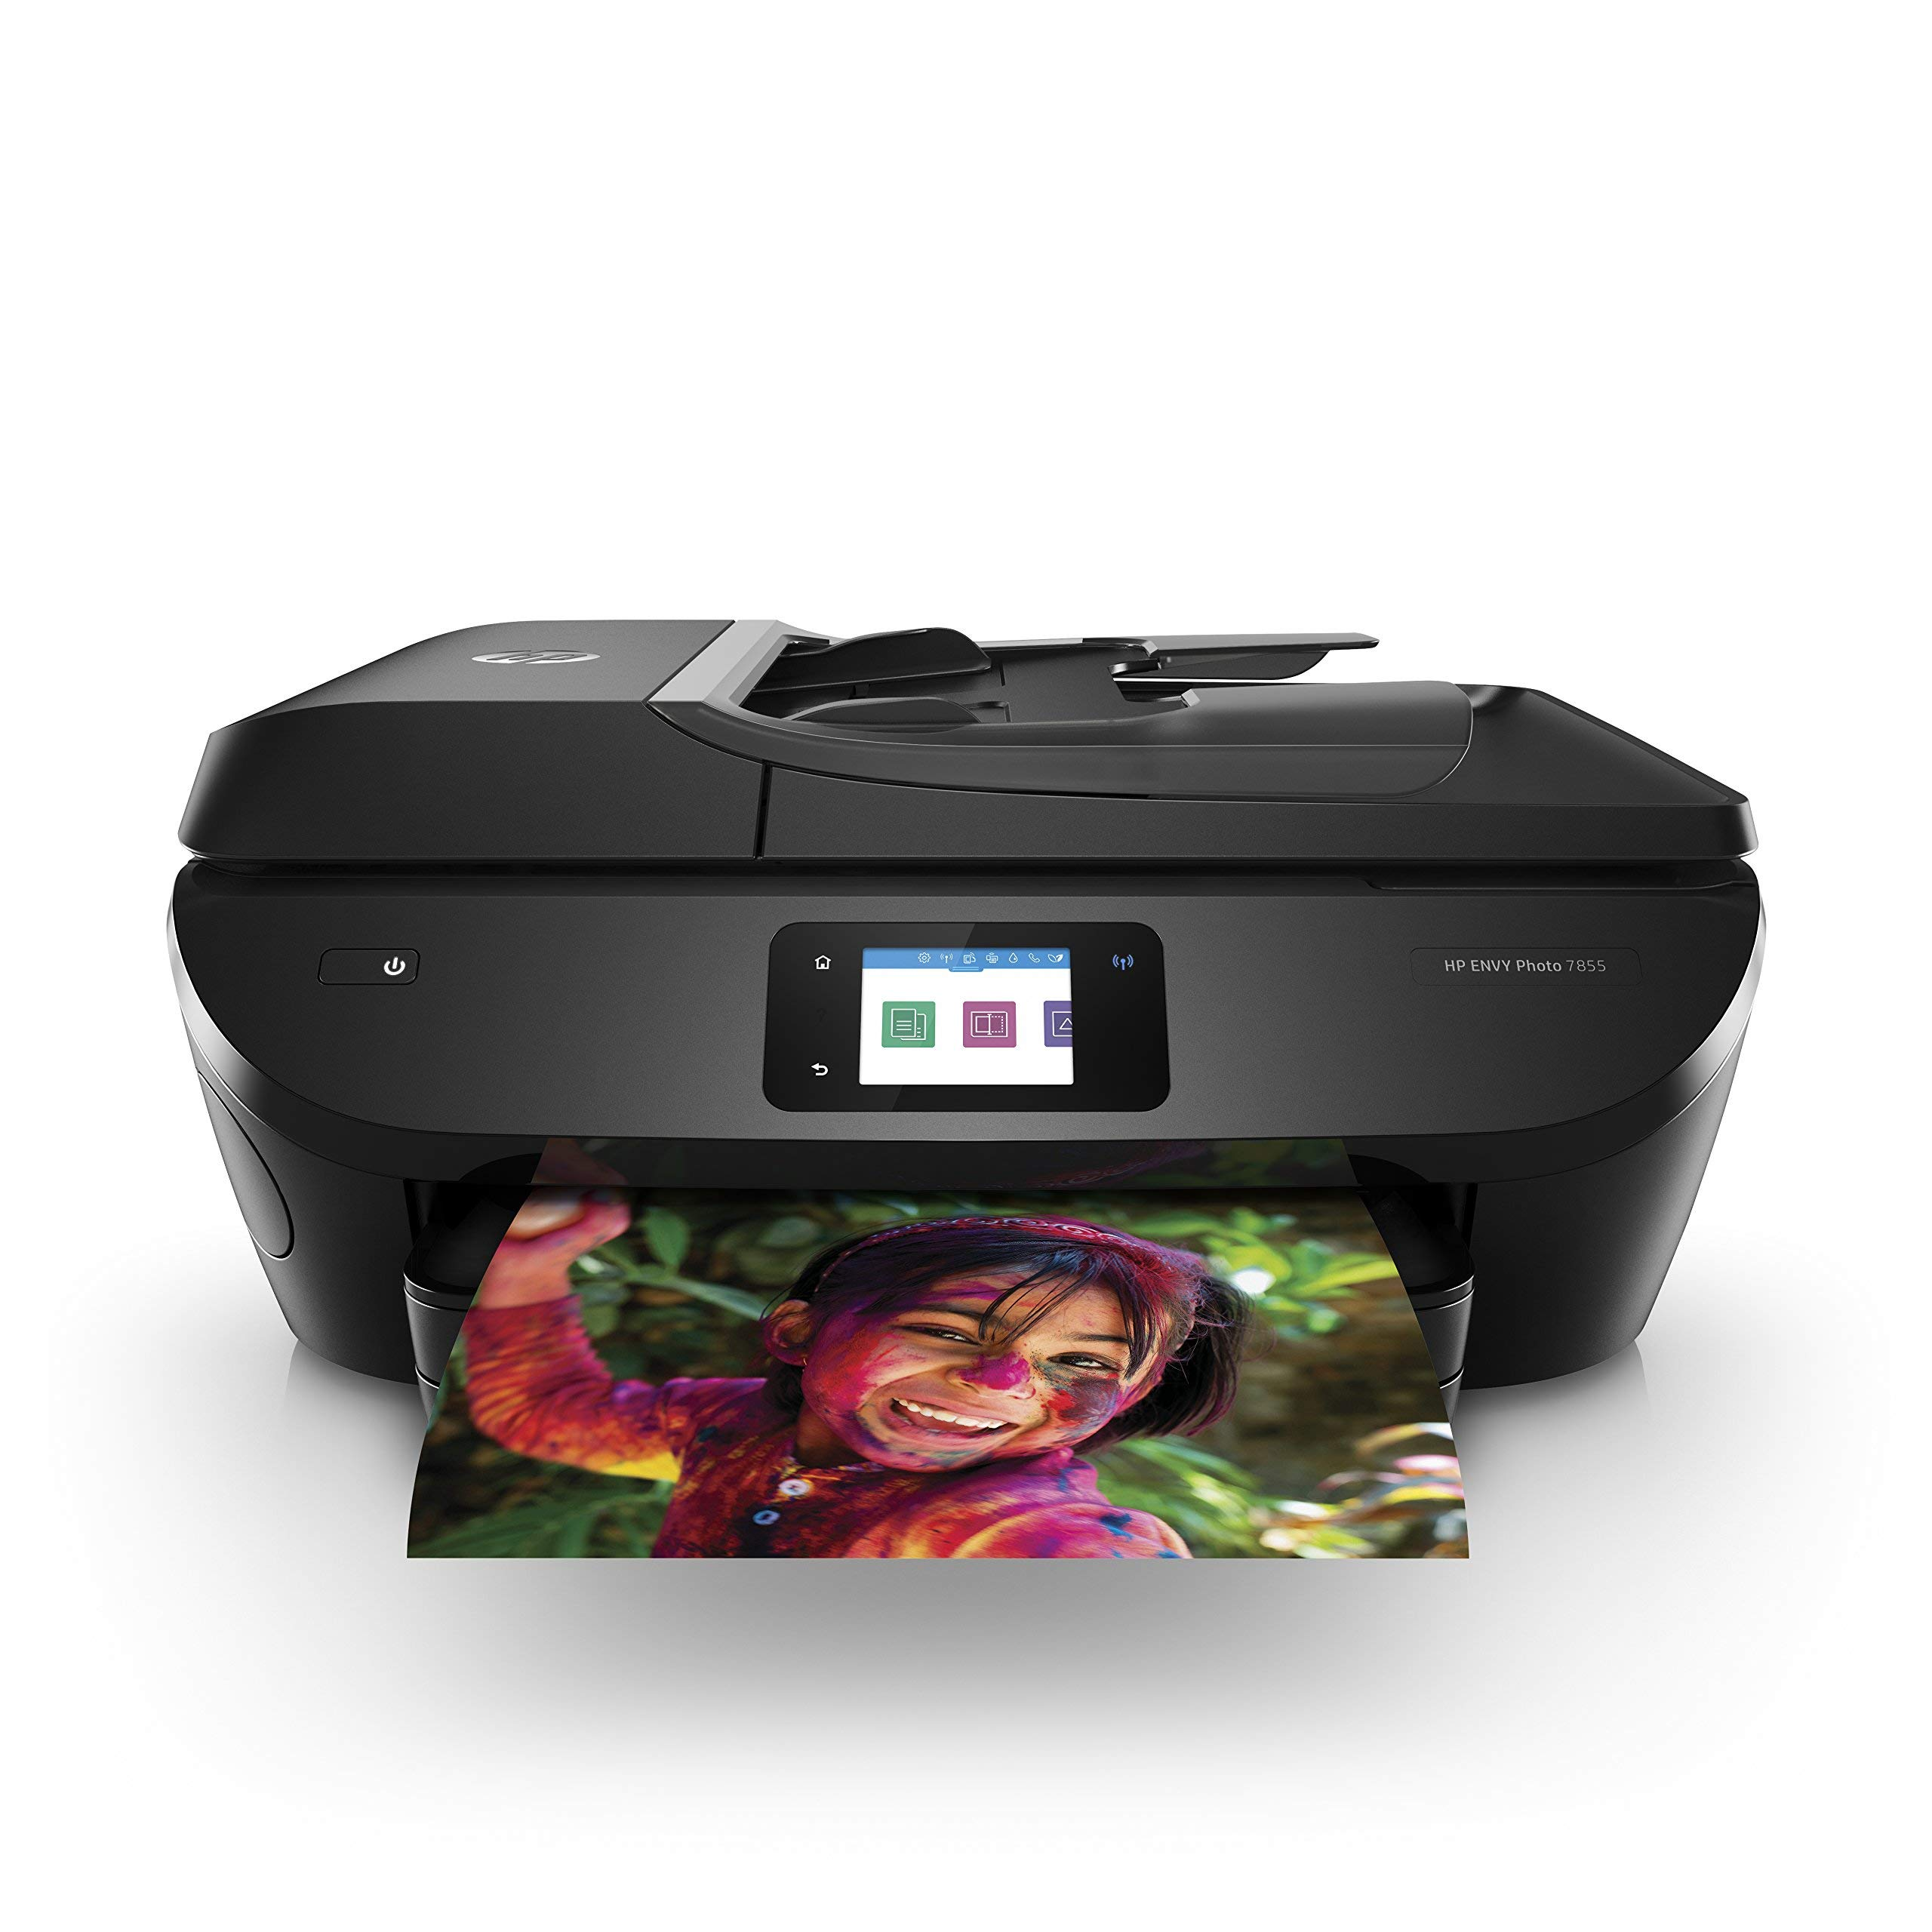 HP ENVY Photo 7855 All in One Photo Printer with Wireless Printing, Instant Ink ready (K7R96A) (Renewed) by HP (Image #1)